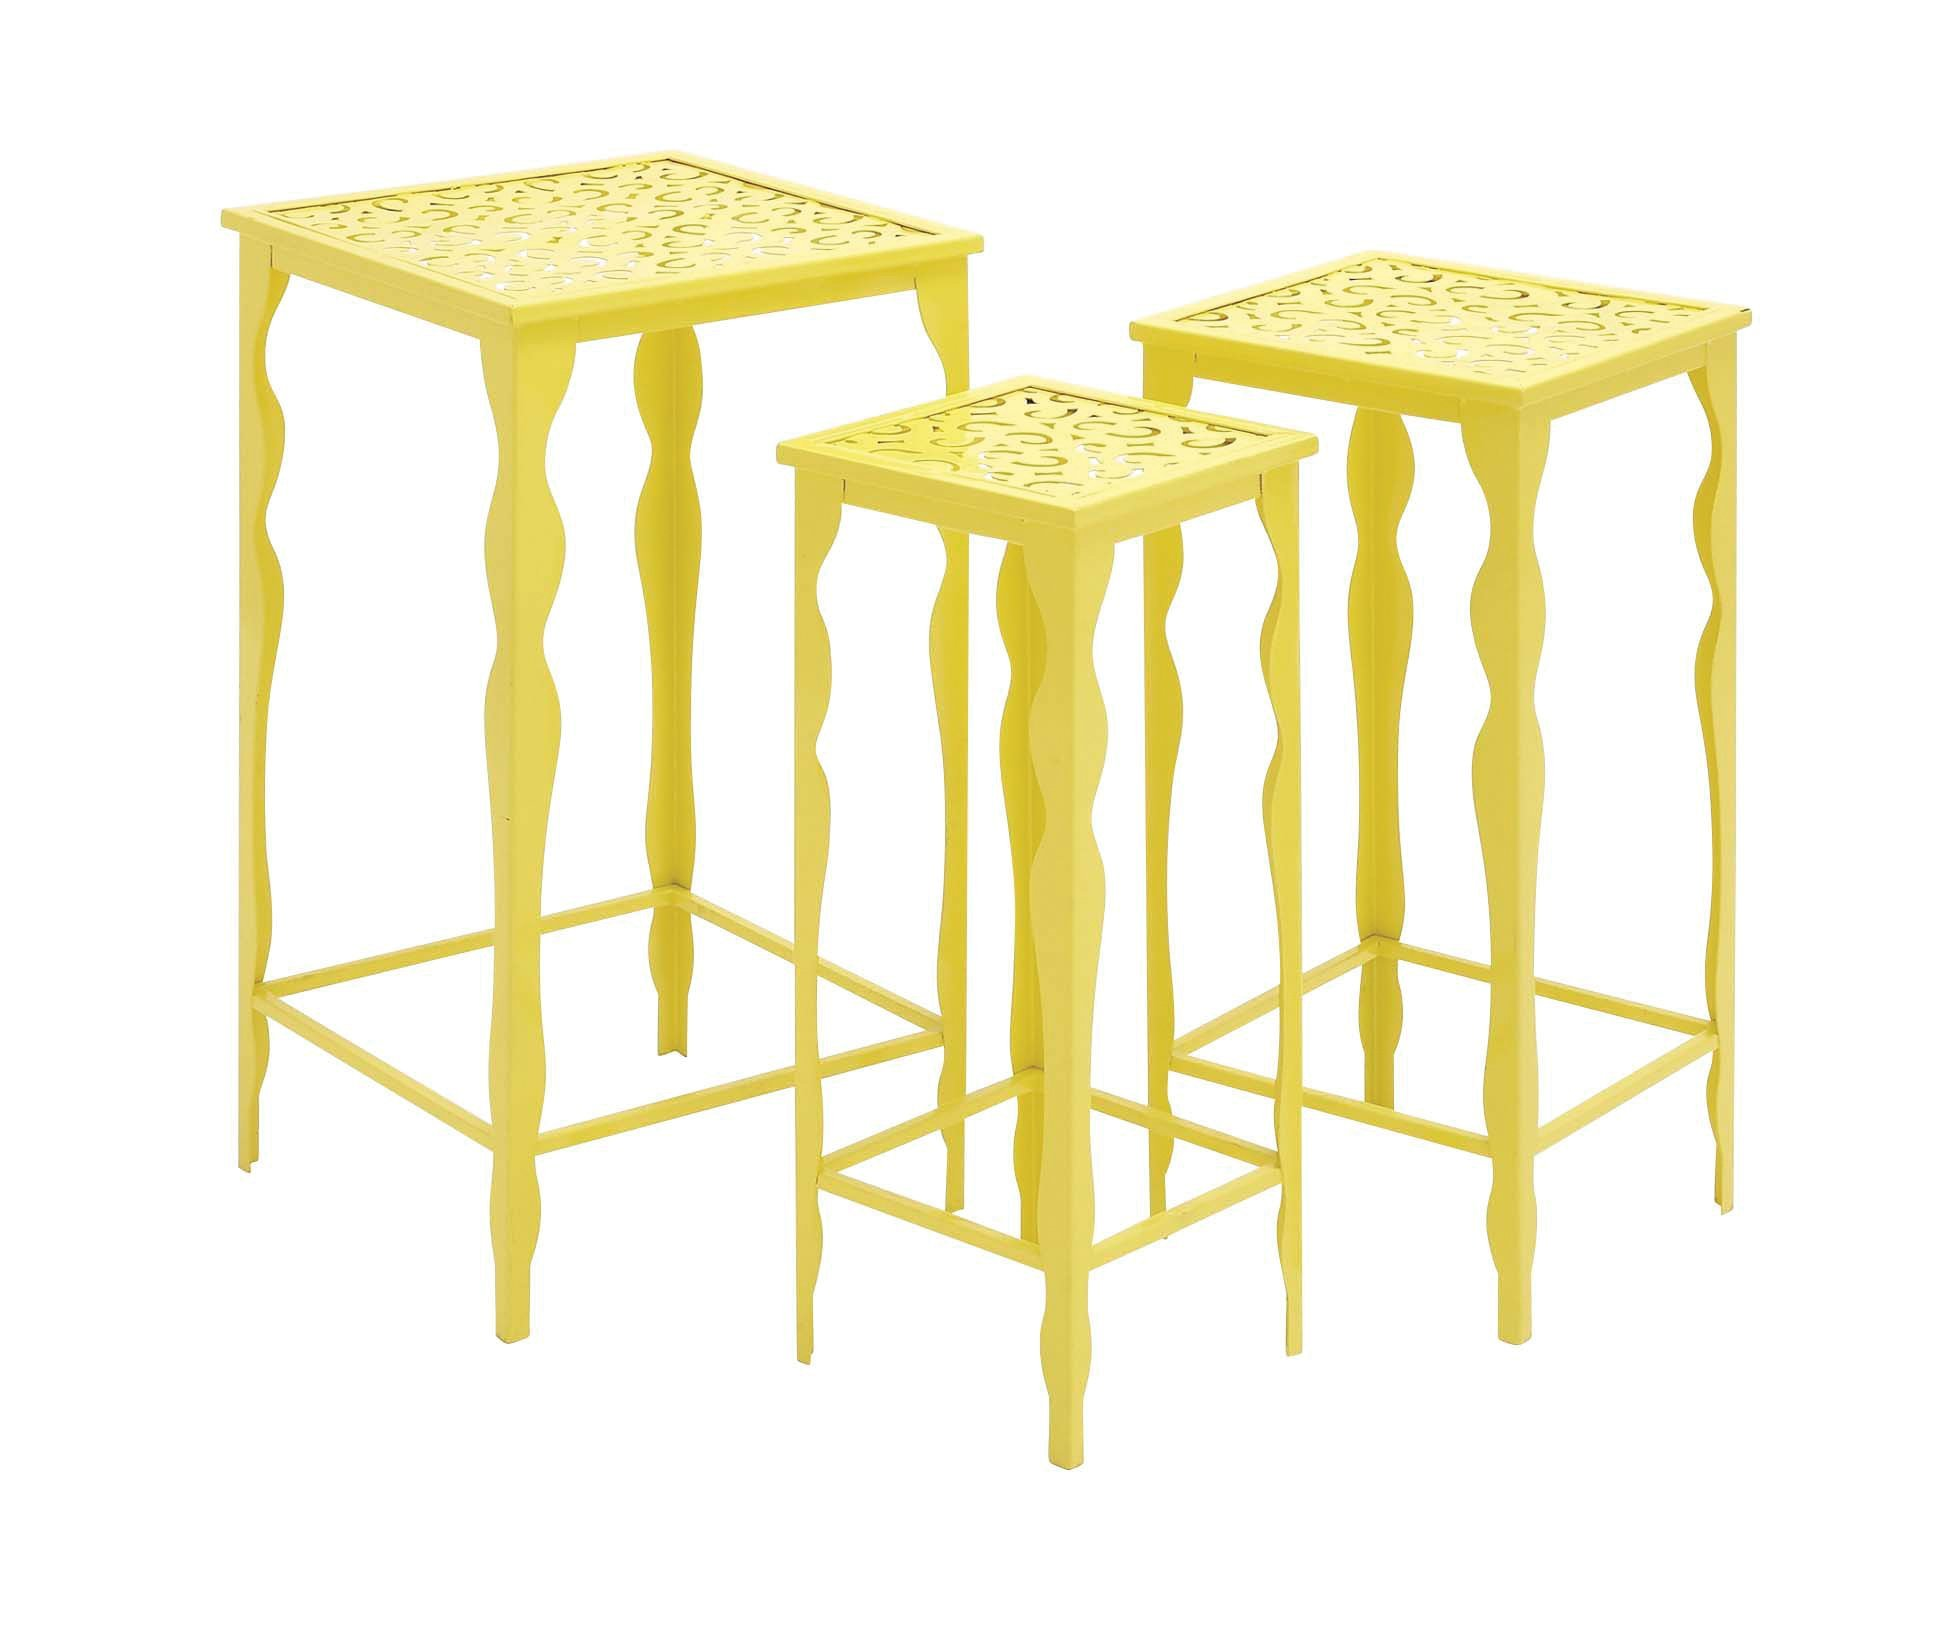 The Funky Set of 3 Metal Plant Stand by Benzara